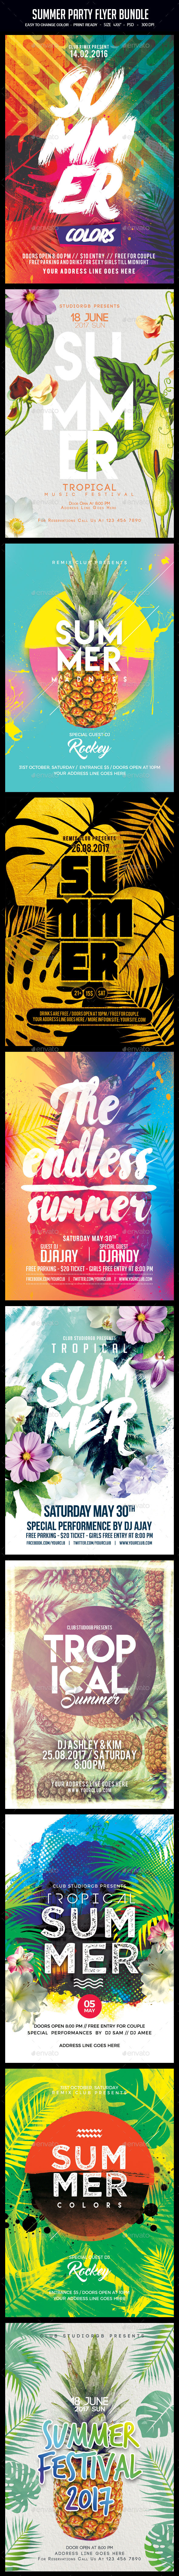 Bundle of 10 Summer Party Flyers - Clubs & Parties Events